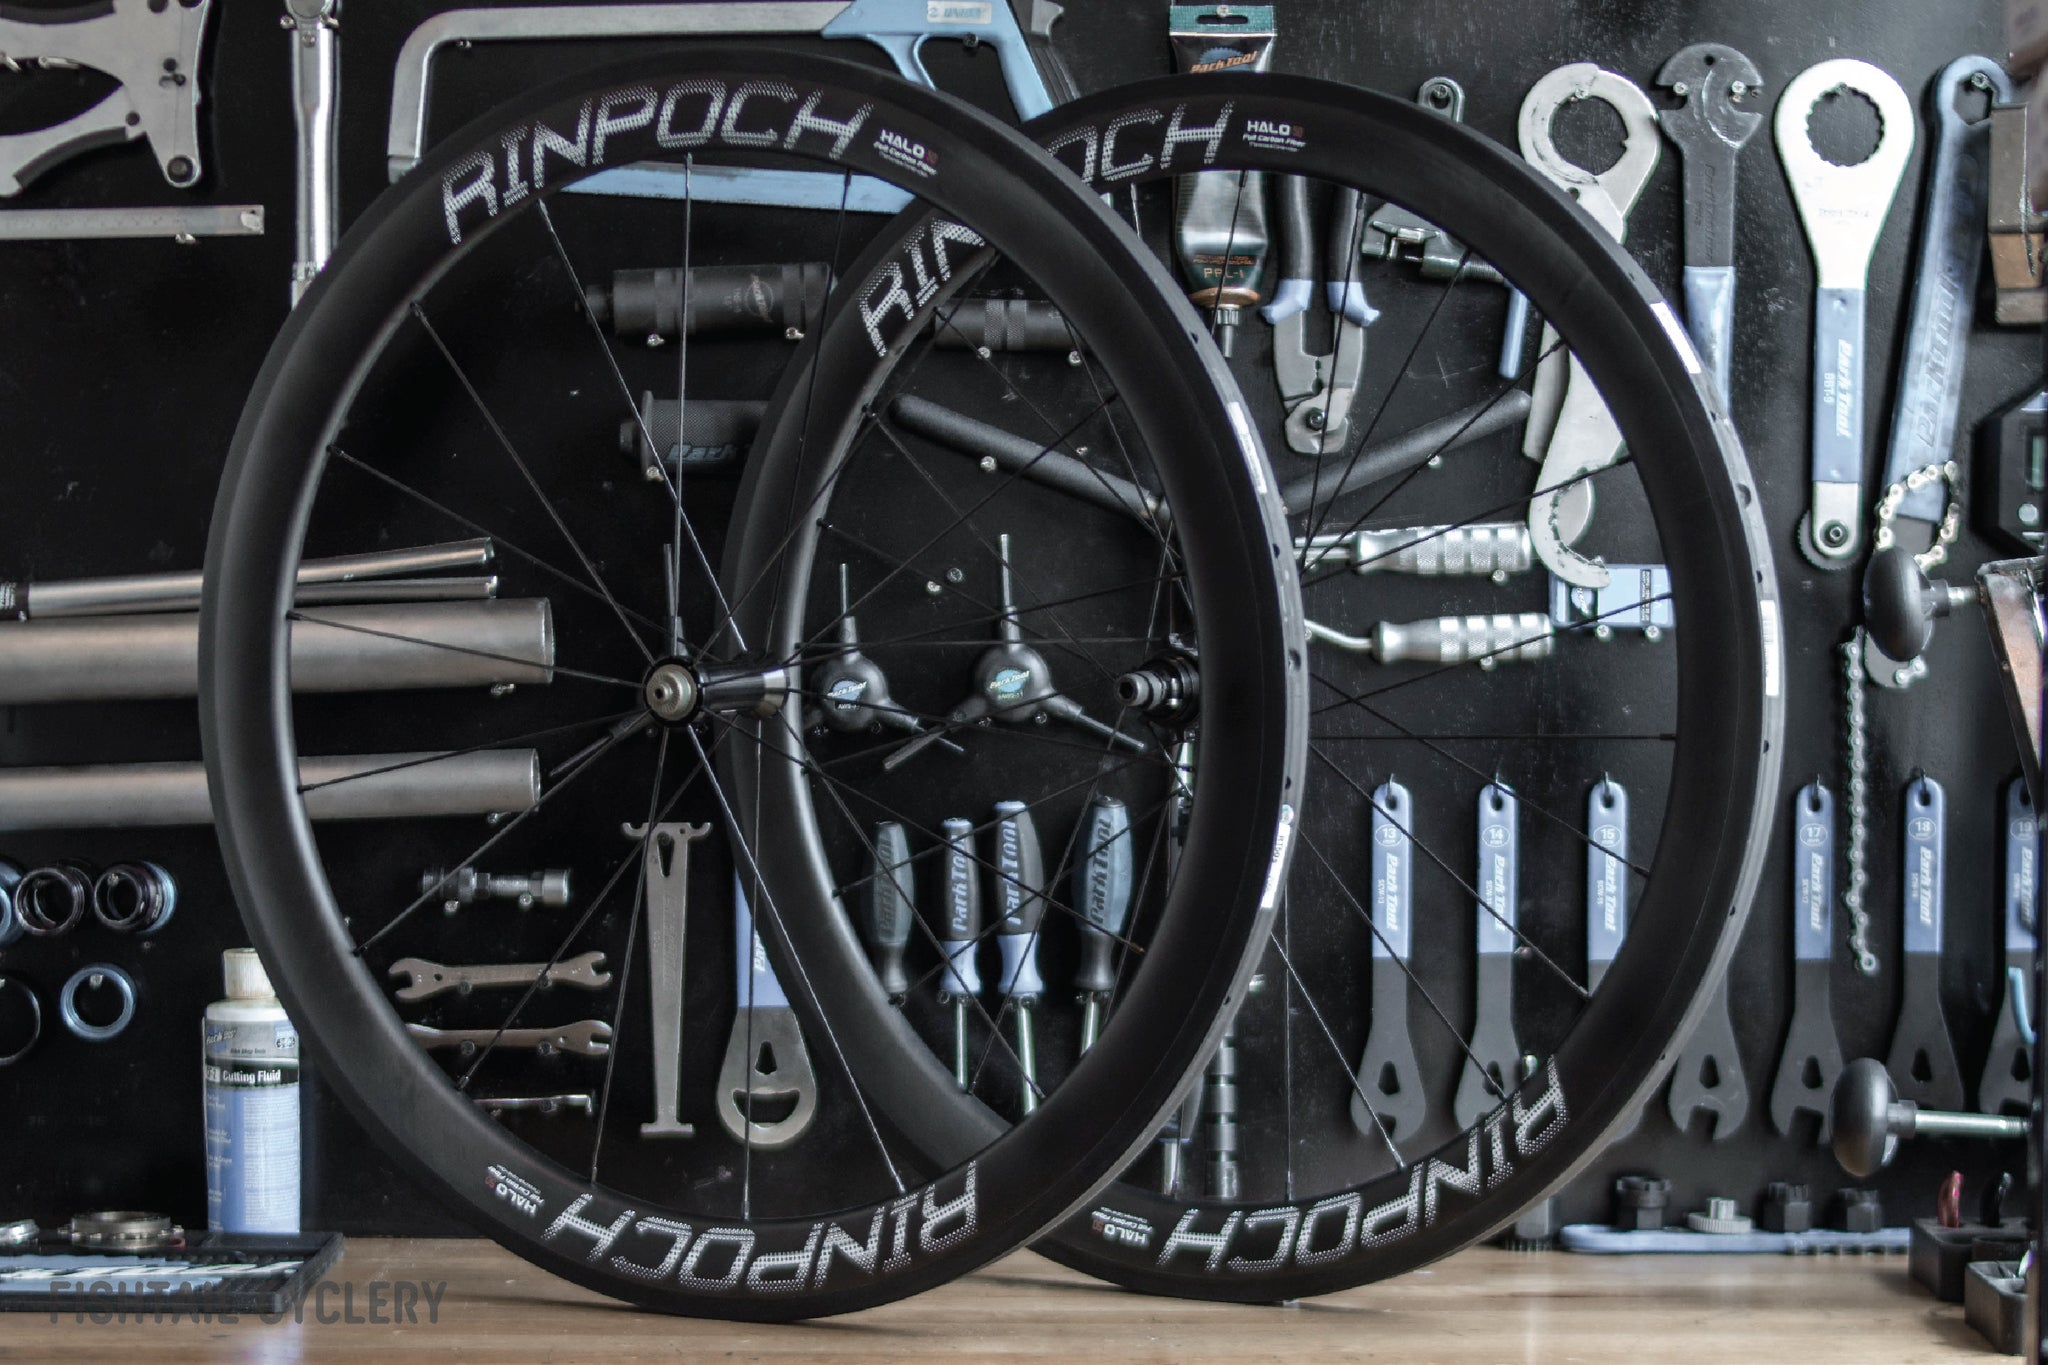 Rinpoch Halo Carbon Wheelset - FISHTAIL CYCLERY